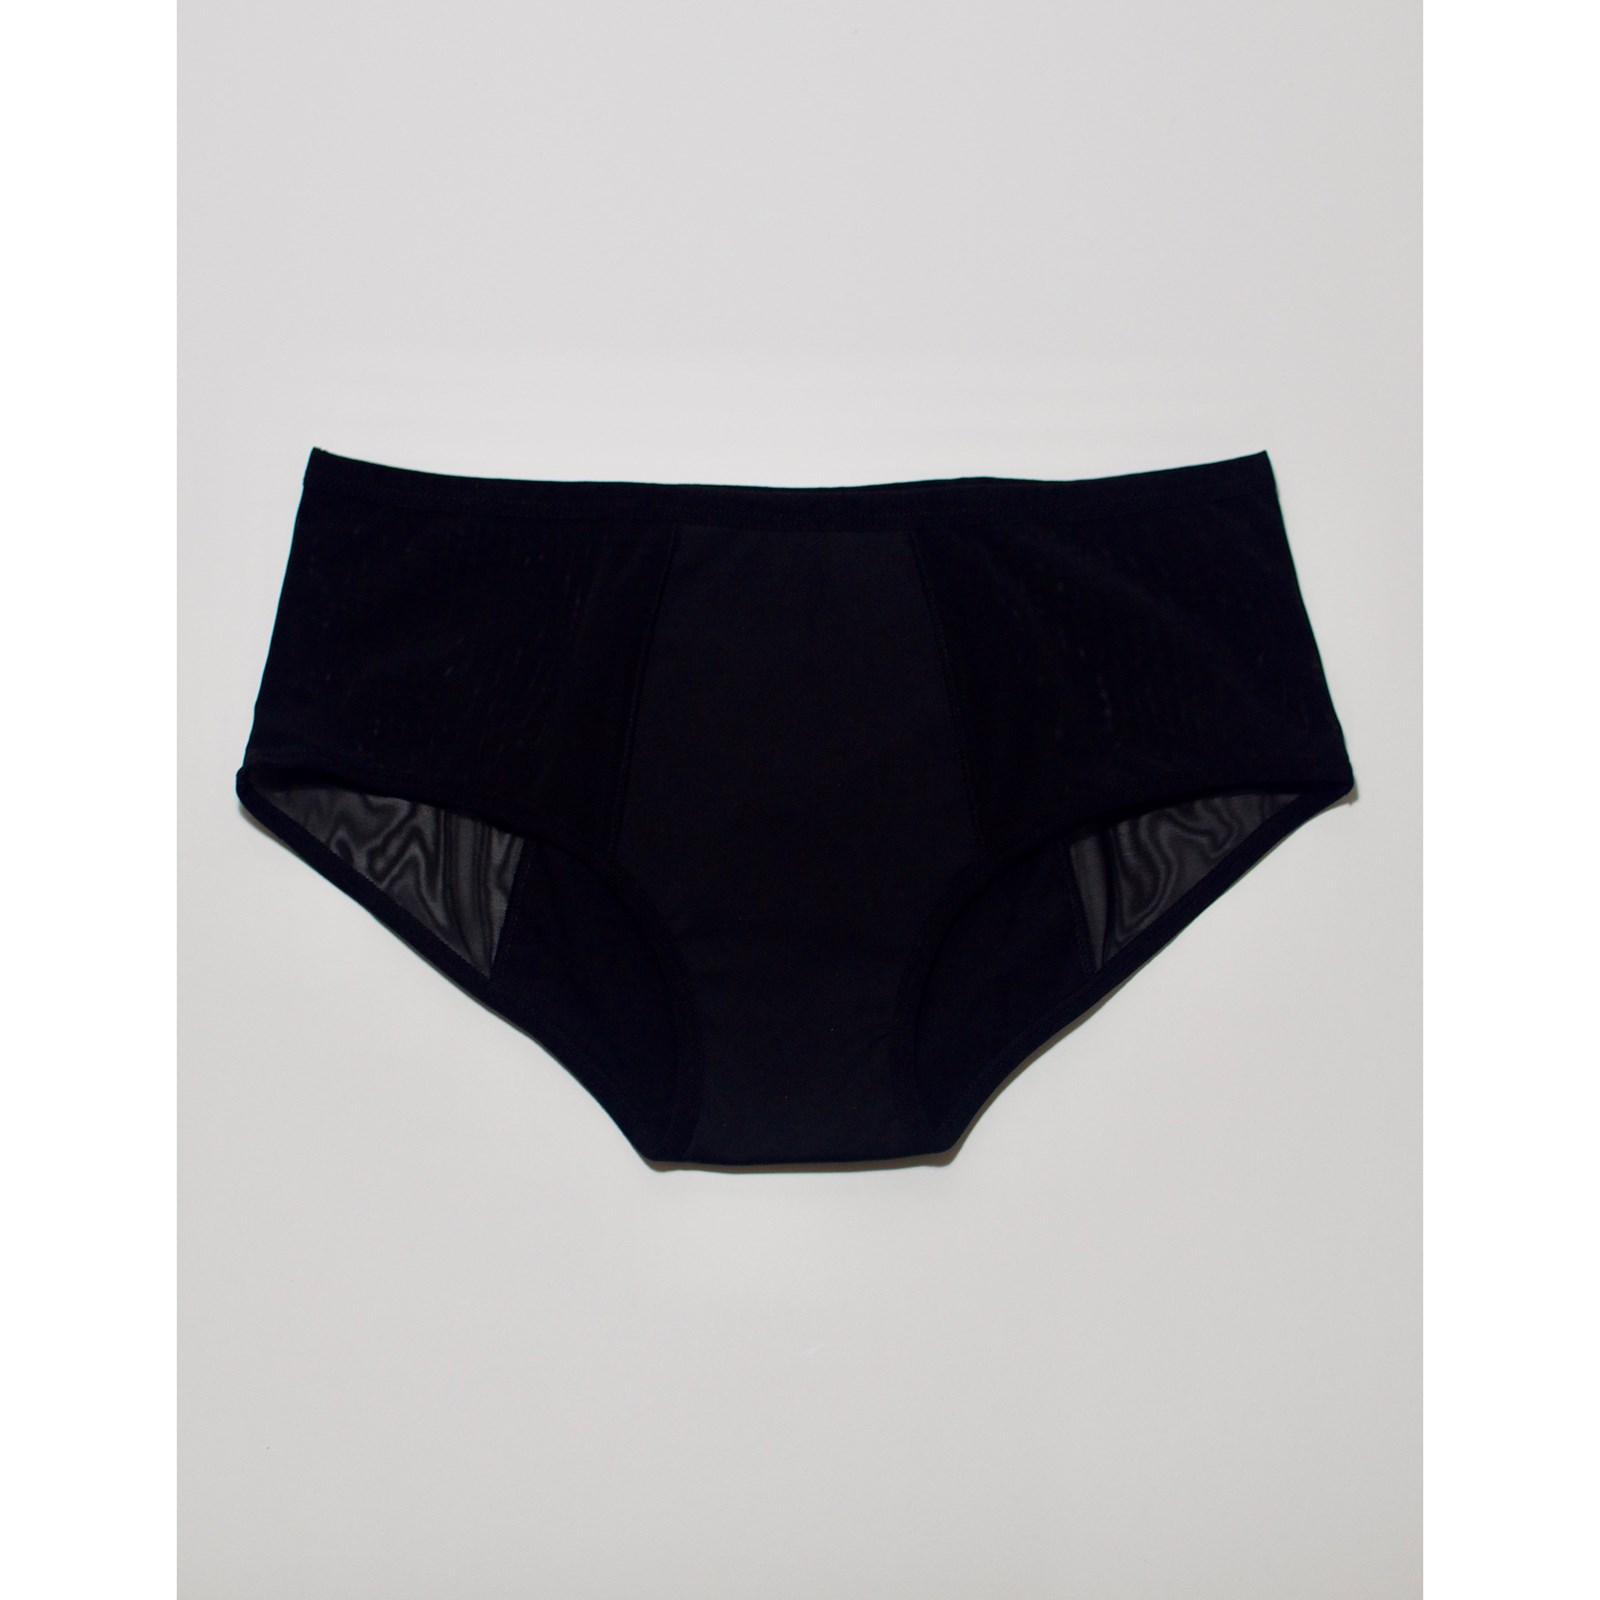 Everyday Period Pants Mid-Rise - Small